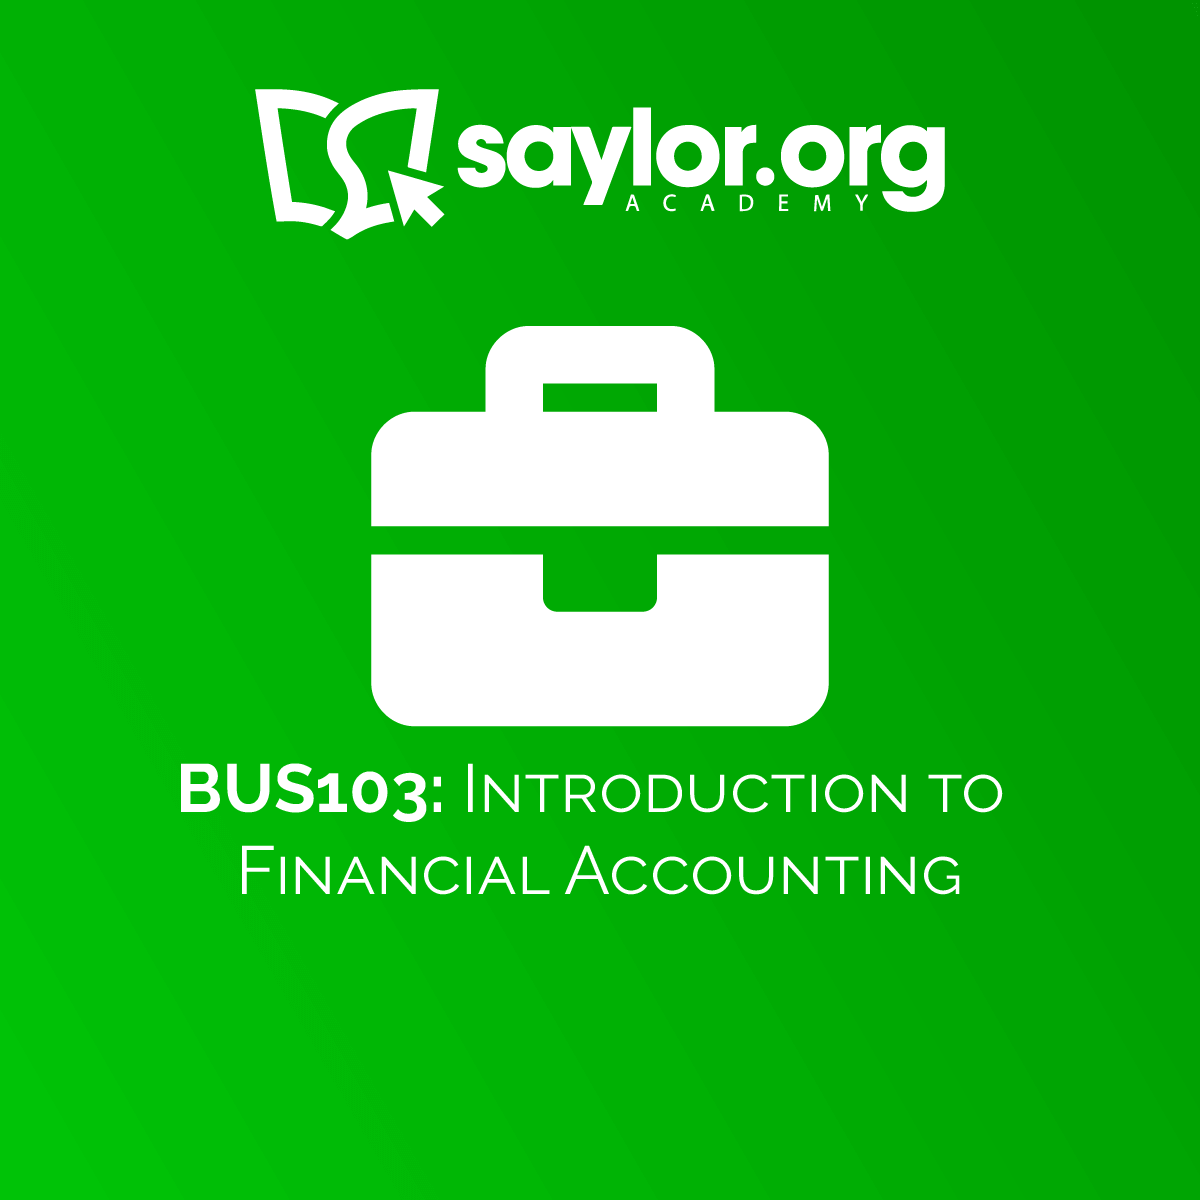 BUS103: Boundless Accounting: